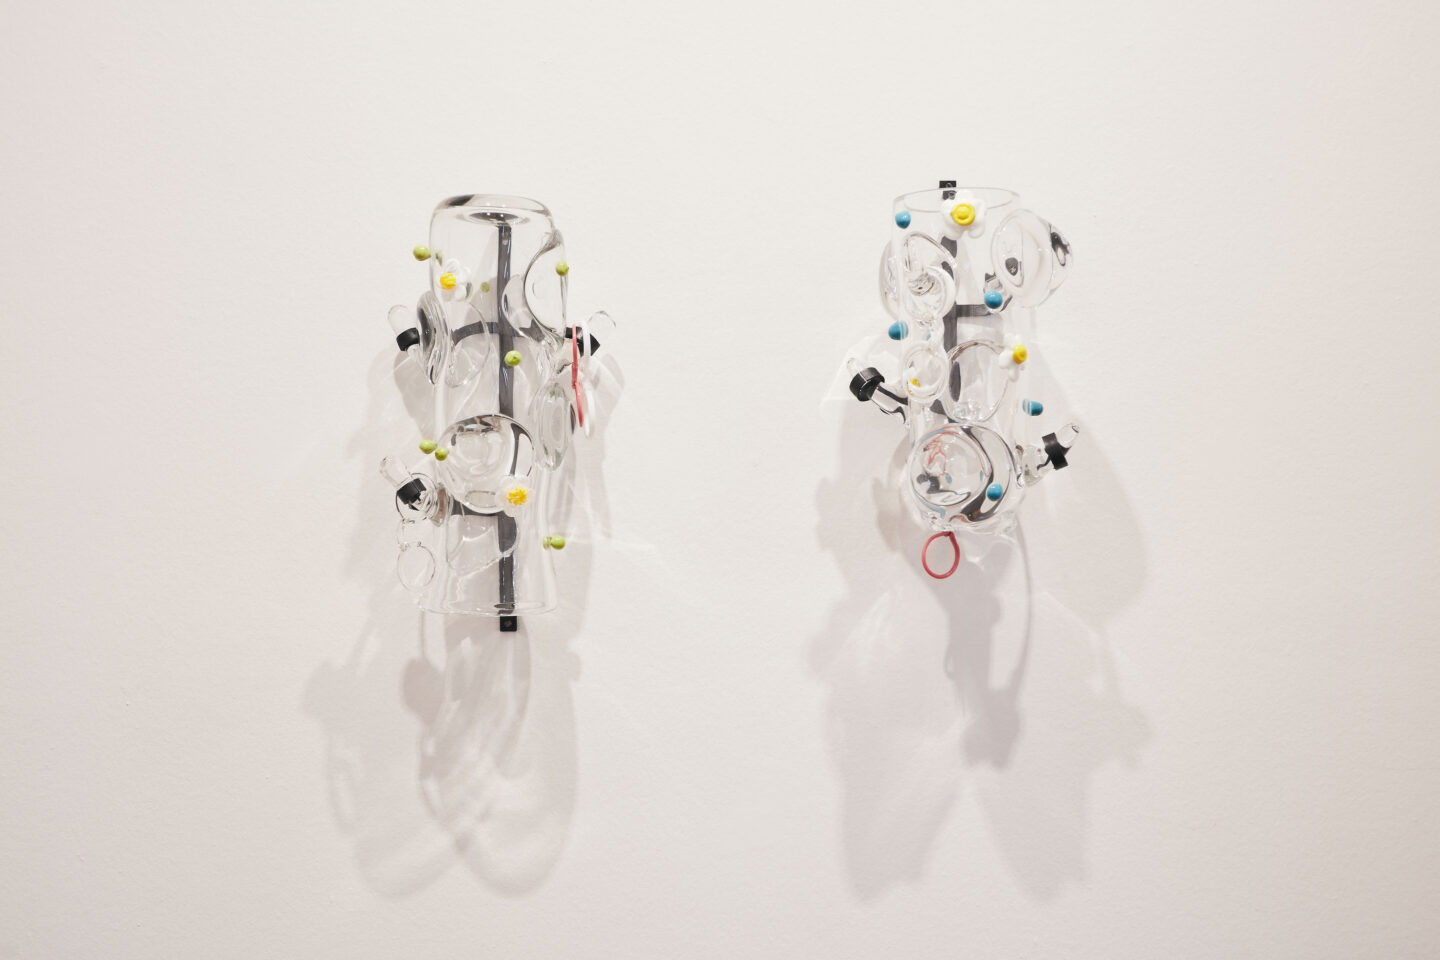 Exhibition View Groupshow «Motor; view on Stefan Burger, Krautstrunk 1 & 2, glass, steel, 30x40x30cm each, 2020» at Kunstraum Riehen, Riehen, Basel, 2020 / Photo: Moritz Schermbach / Courtesy: the artist